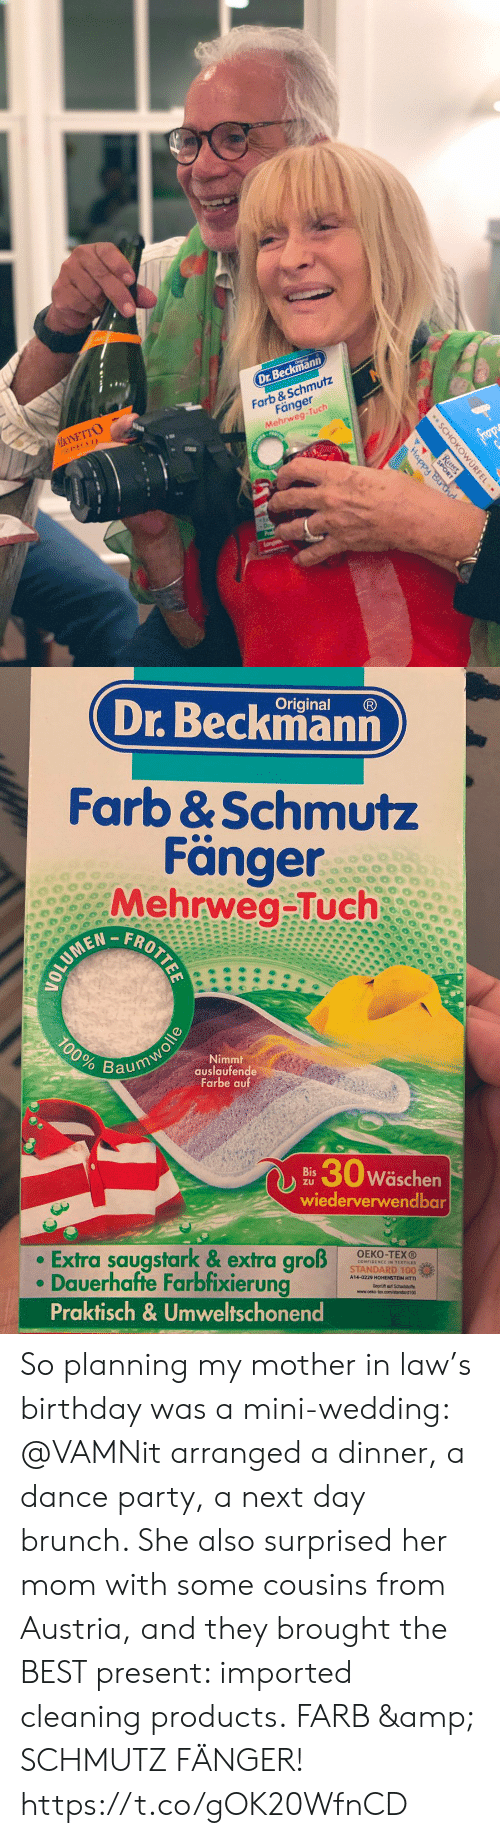 bis: Dr.Beckmann  MONETTO  PROSECCO  Farb &Schmutz  Fänger  Mehrweg-Tuch  frop  Happy Bir d  Langan  SCHOKOWURFEL  Ritter  SPORT  .   Original  Dr.Beckmann  Farb &Schmutz  Fänger  Mehrweg-Tuch  FROTTEE  100%  Nimmt  auslaufende  Farbe auf  Baumwolle  30w  Wäschen  Bis  ZU  wiederverwendbar  Extra saugstark & extra groß  Dauerhafte Farbfixierung  Praktisch& Umweltschonend  OEKO-TEXO  STANDARD 100%  A14-0229 HOHENSTEIN HTTI So planning my mother in law's birthday was a mini-wedding: @VAMNit arranged a dinner, a dance party, a next day brunch. She also surprised her mom with some cousins from Austria, and they brought the BEST present:  imported cleaning products. FARB & SCHMUTZ FÄNGER! https://t.co/gOK20WfnCD